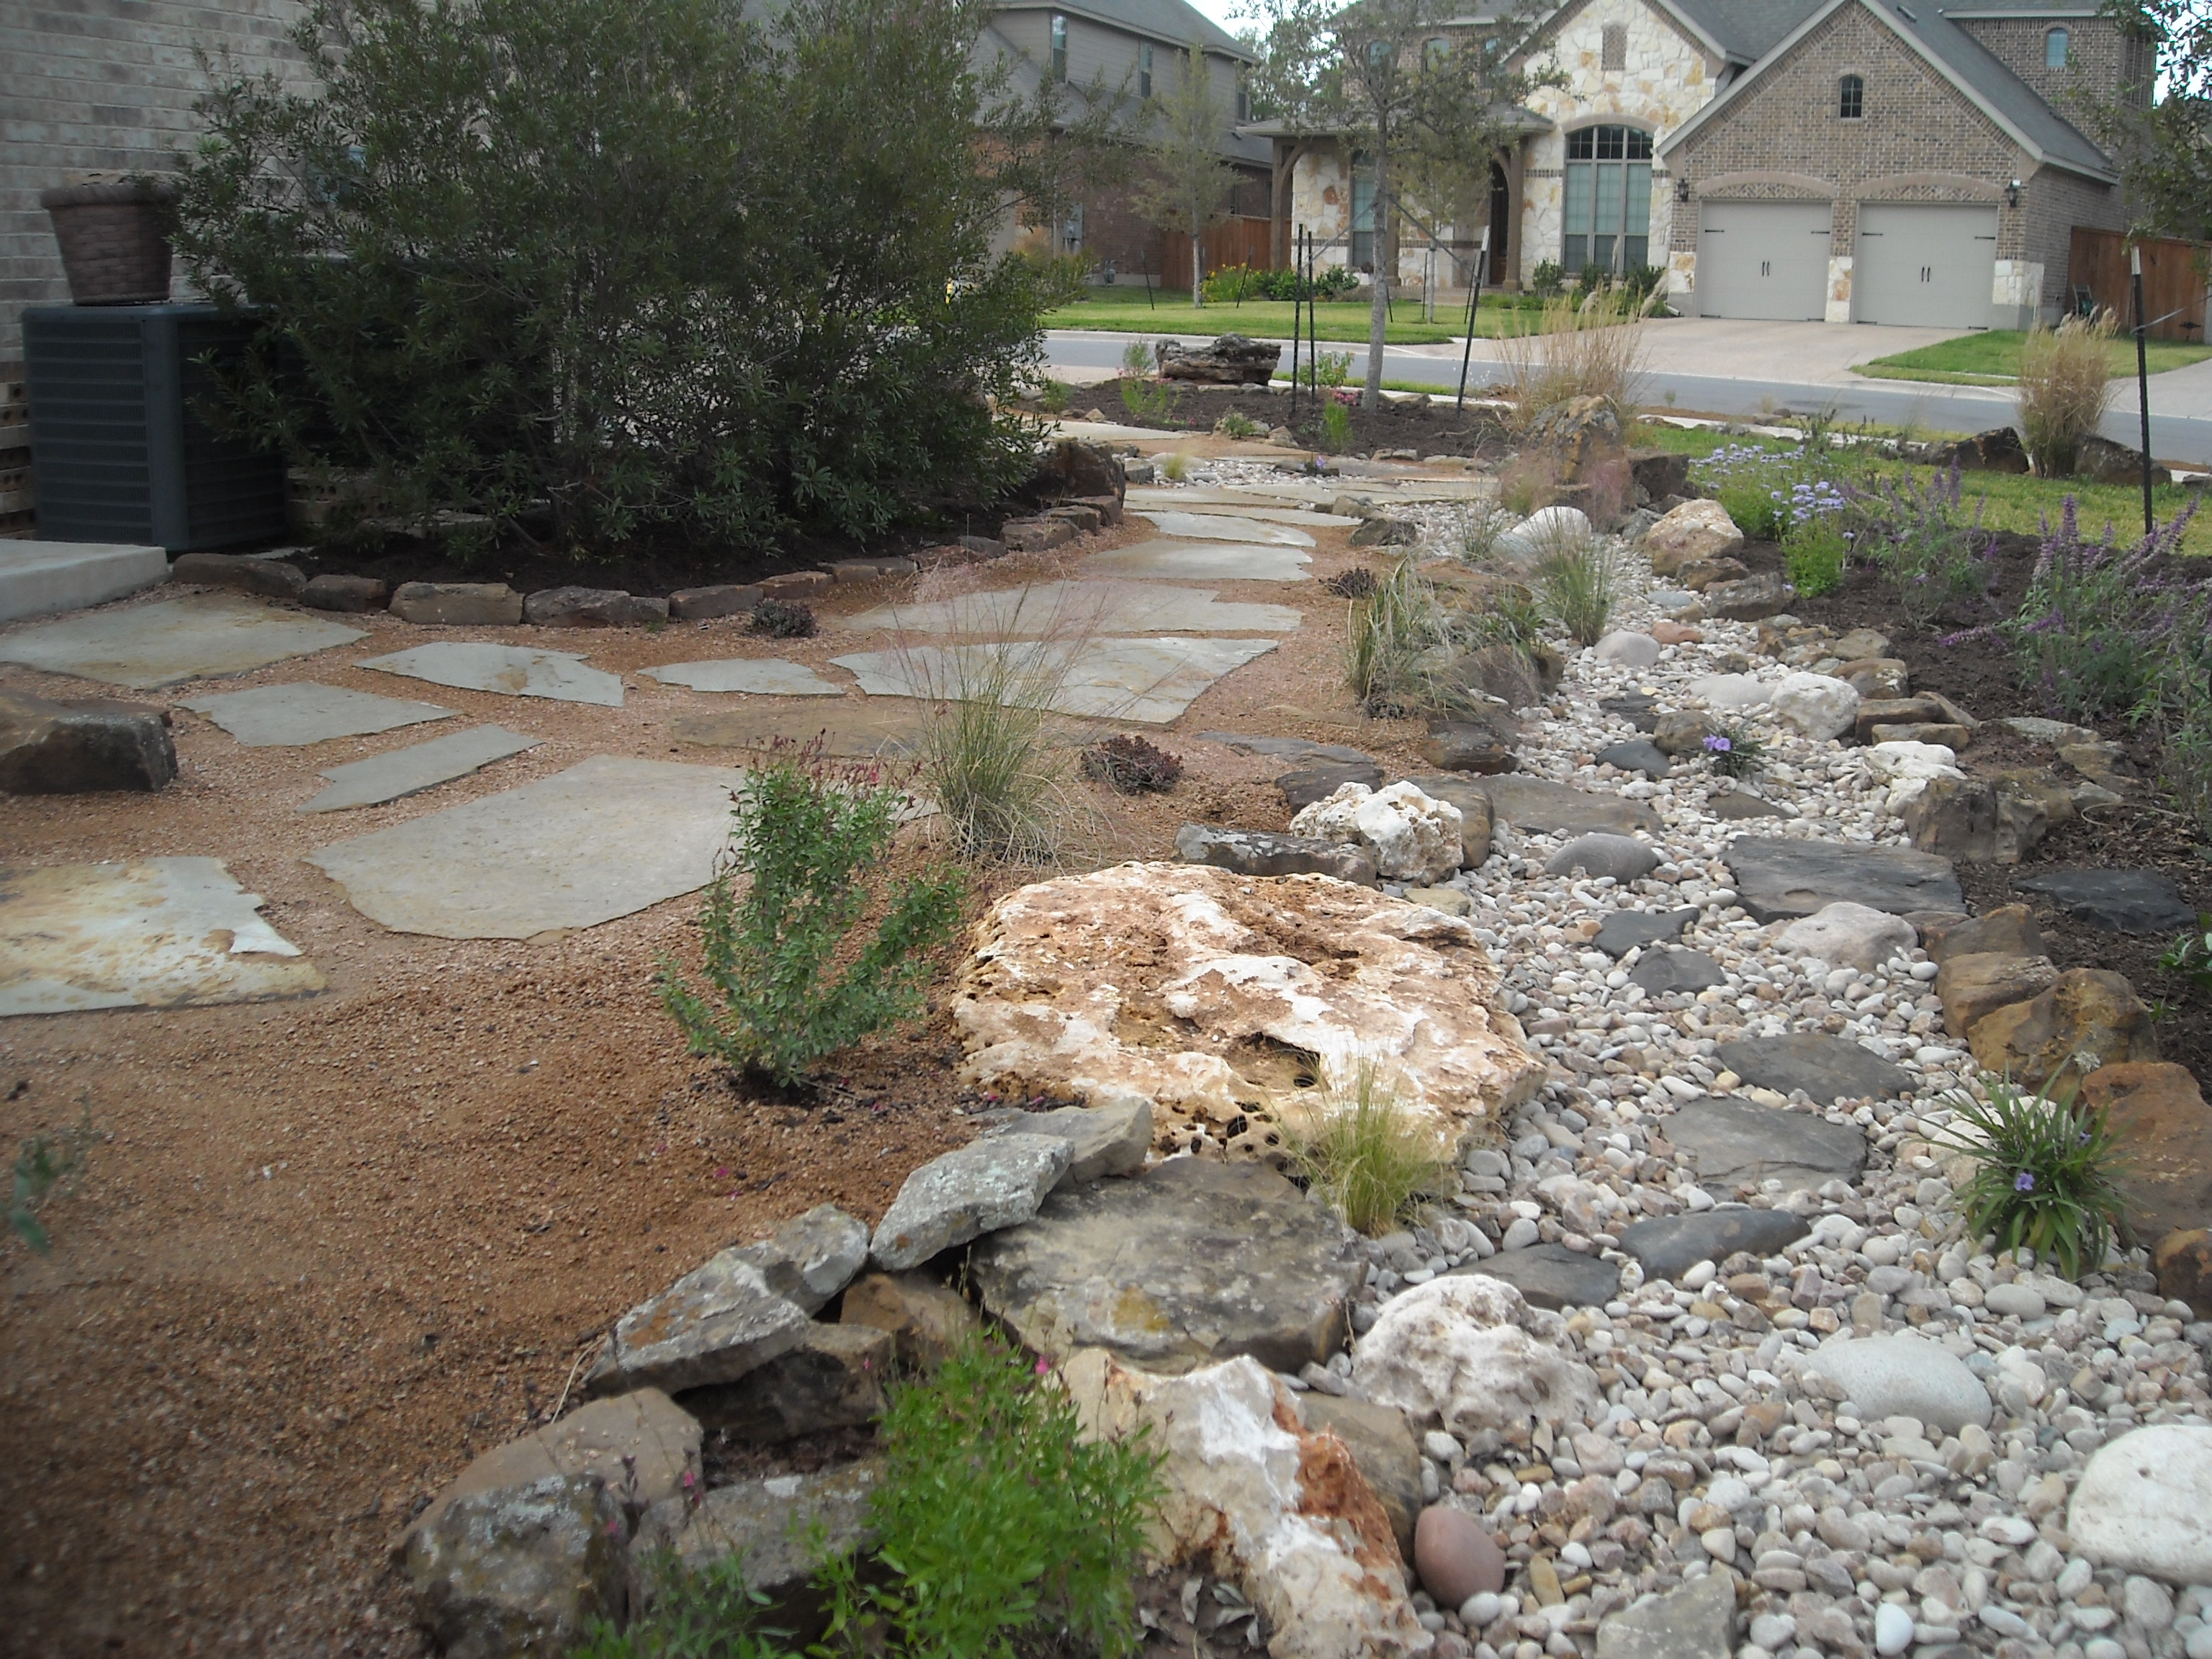 Dry creek bed with decomposed granite beds and flagstone pathway.